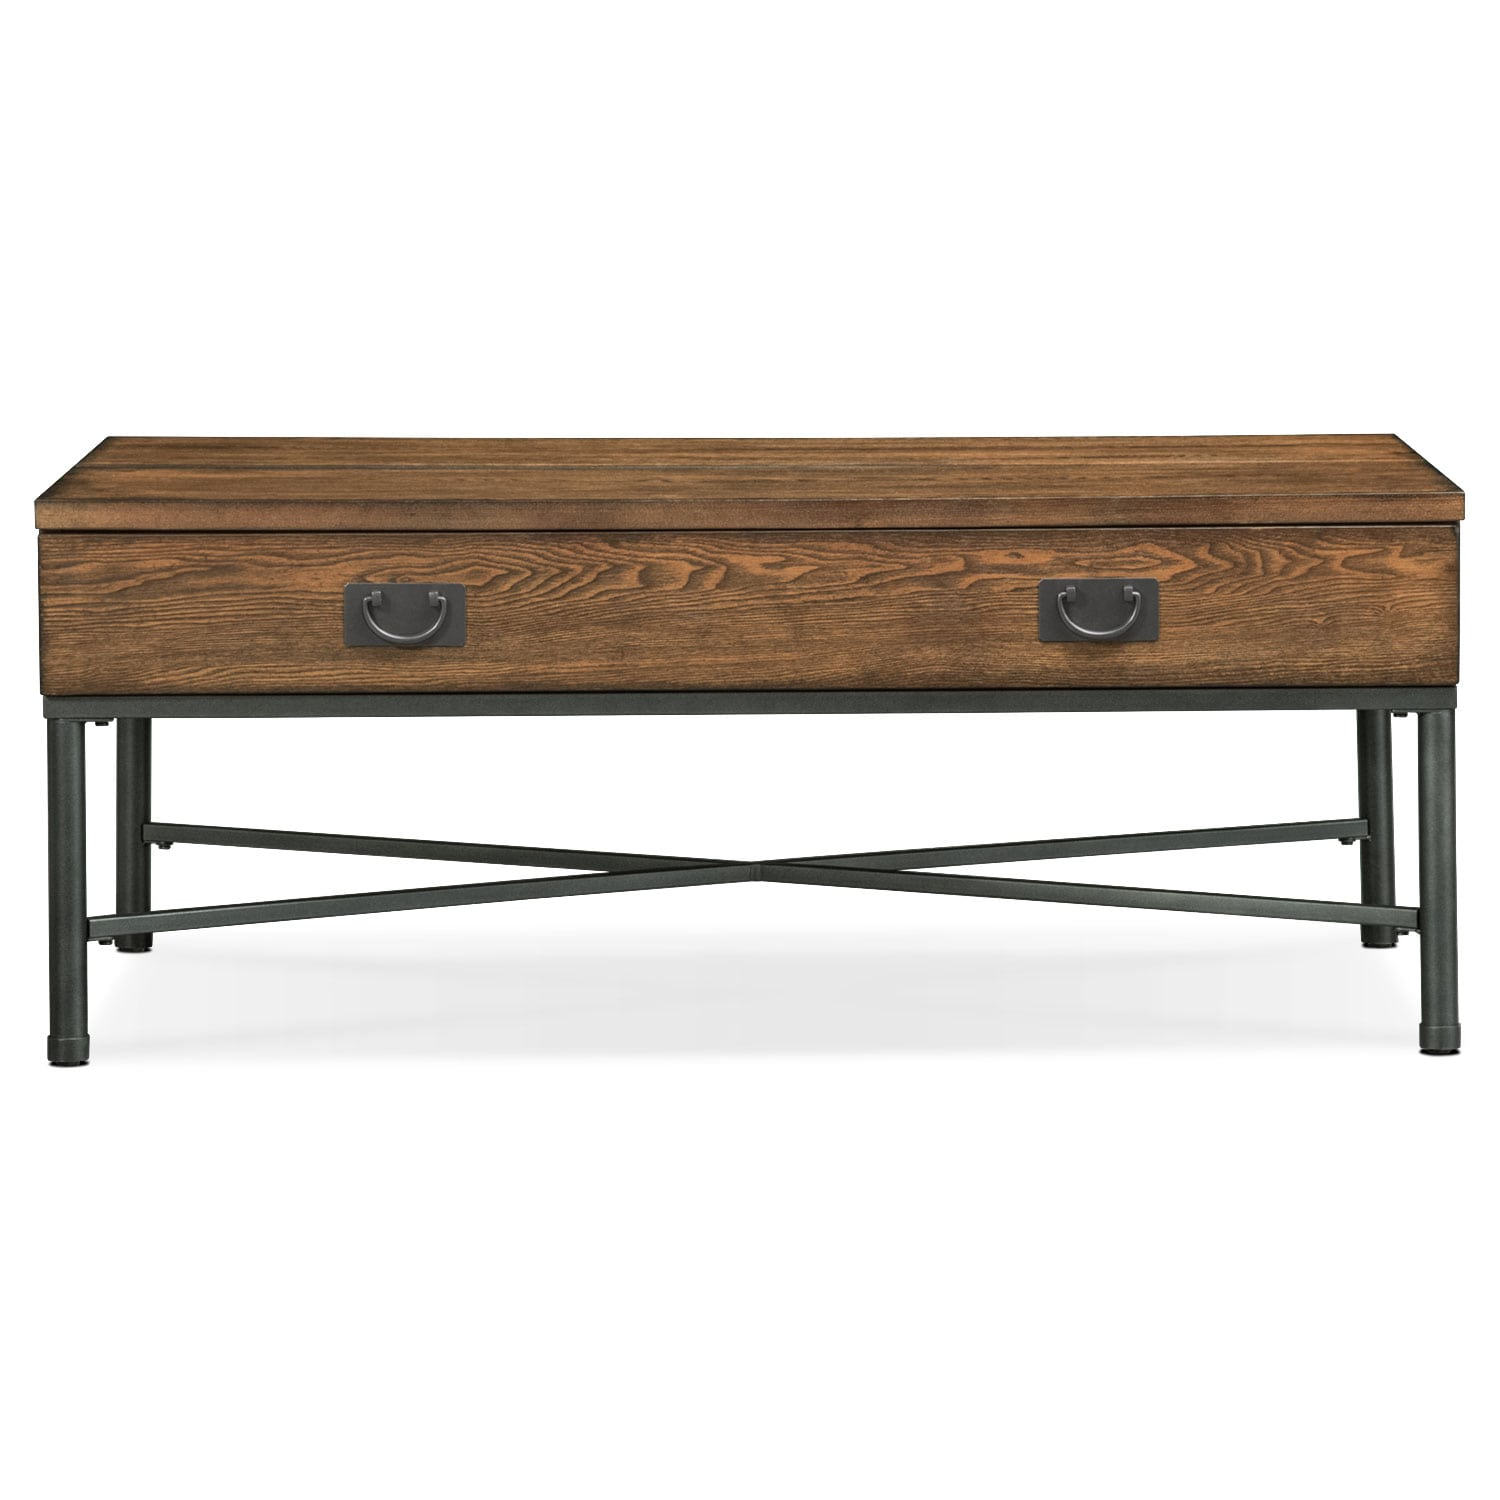 Shipyard Lift Top Cocktail Table Nutmeg